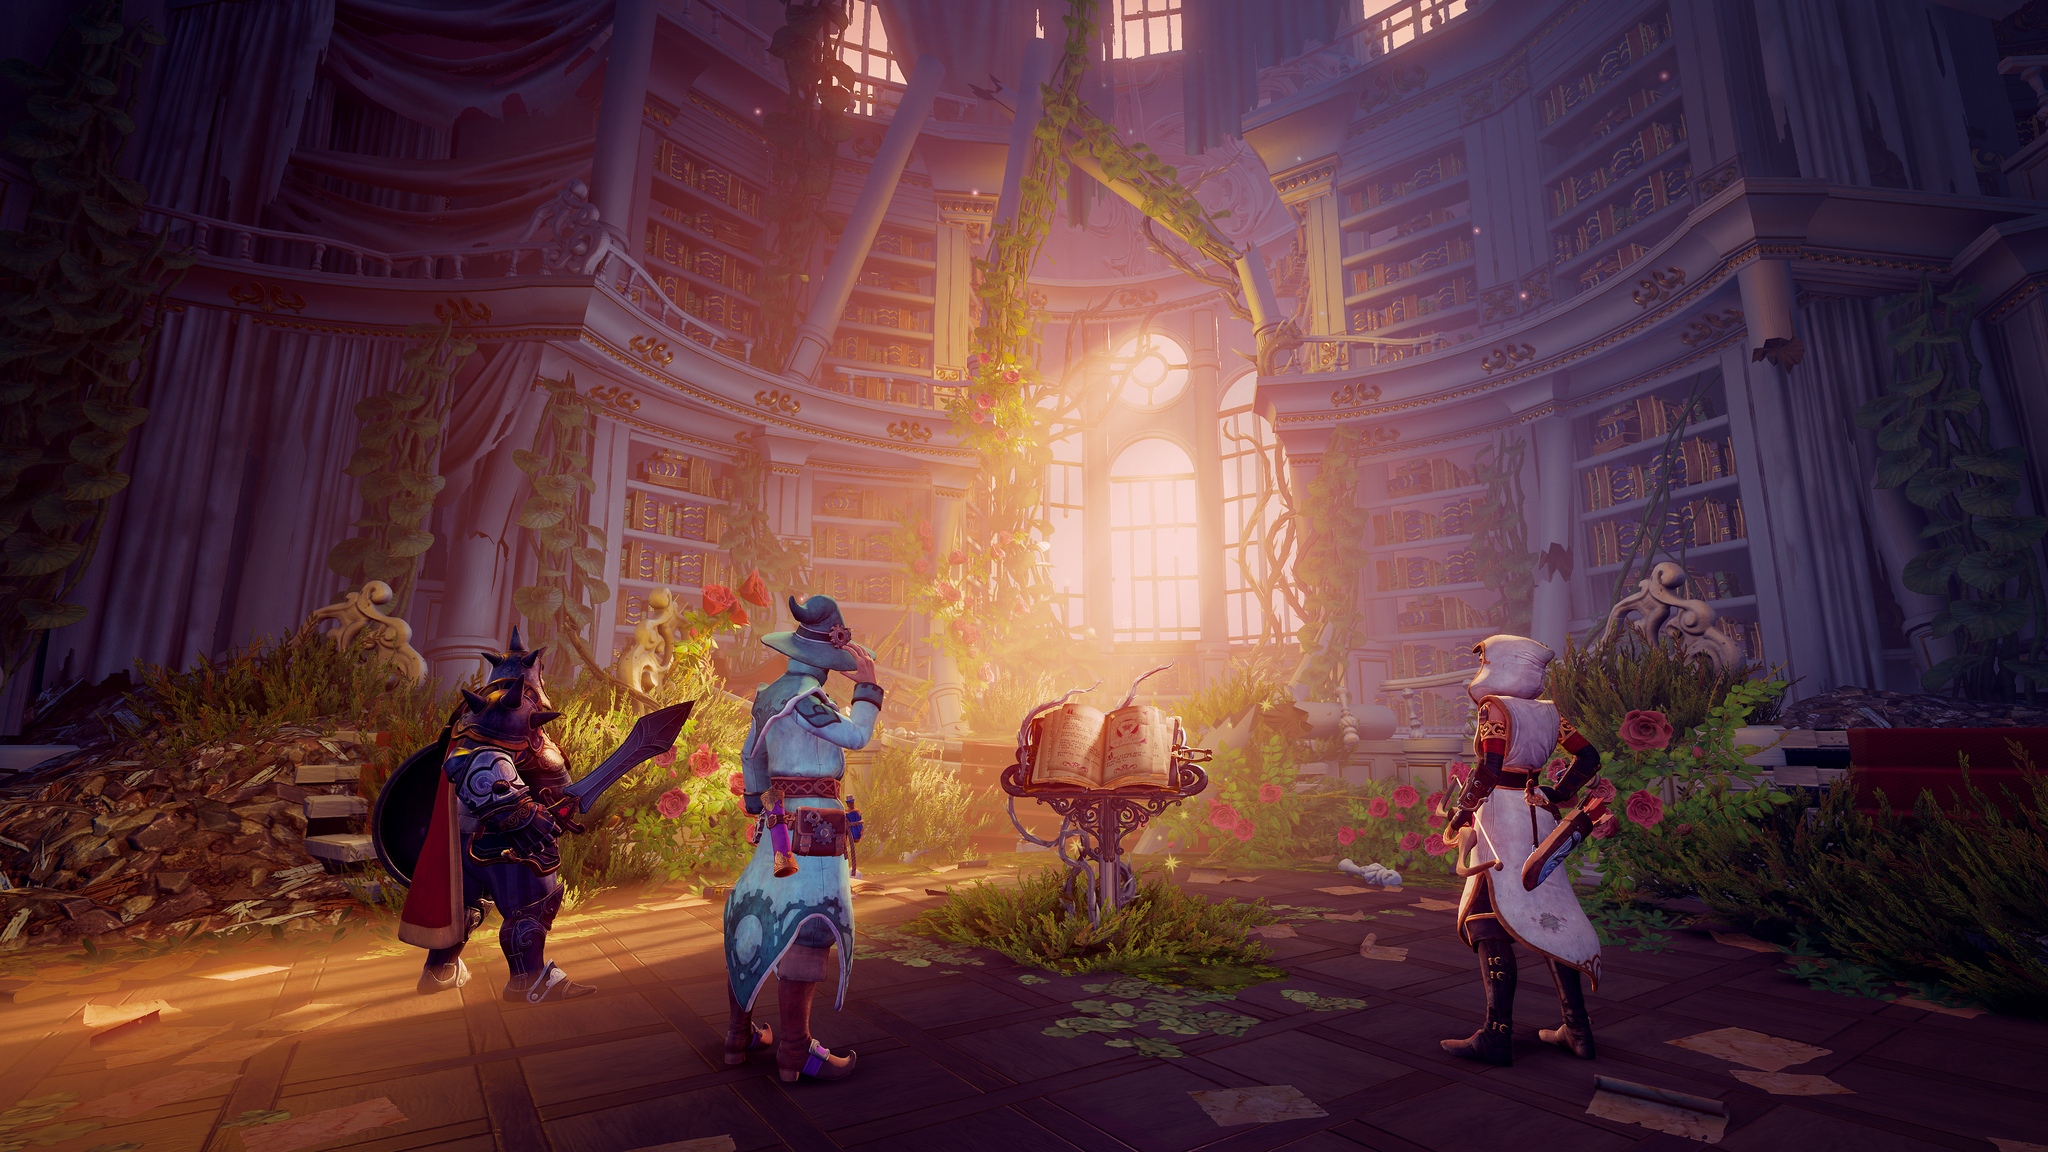 New Trine game coming this fall